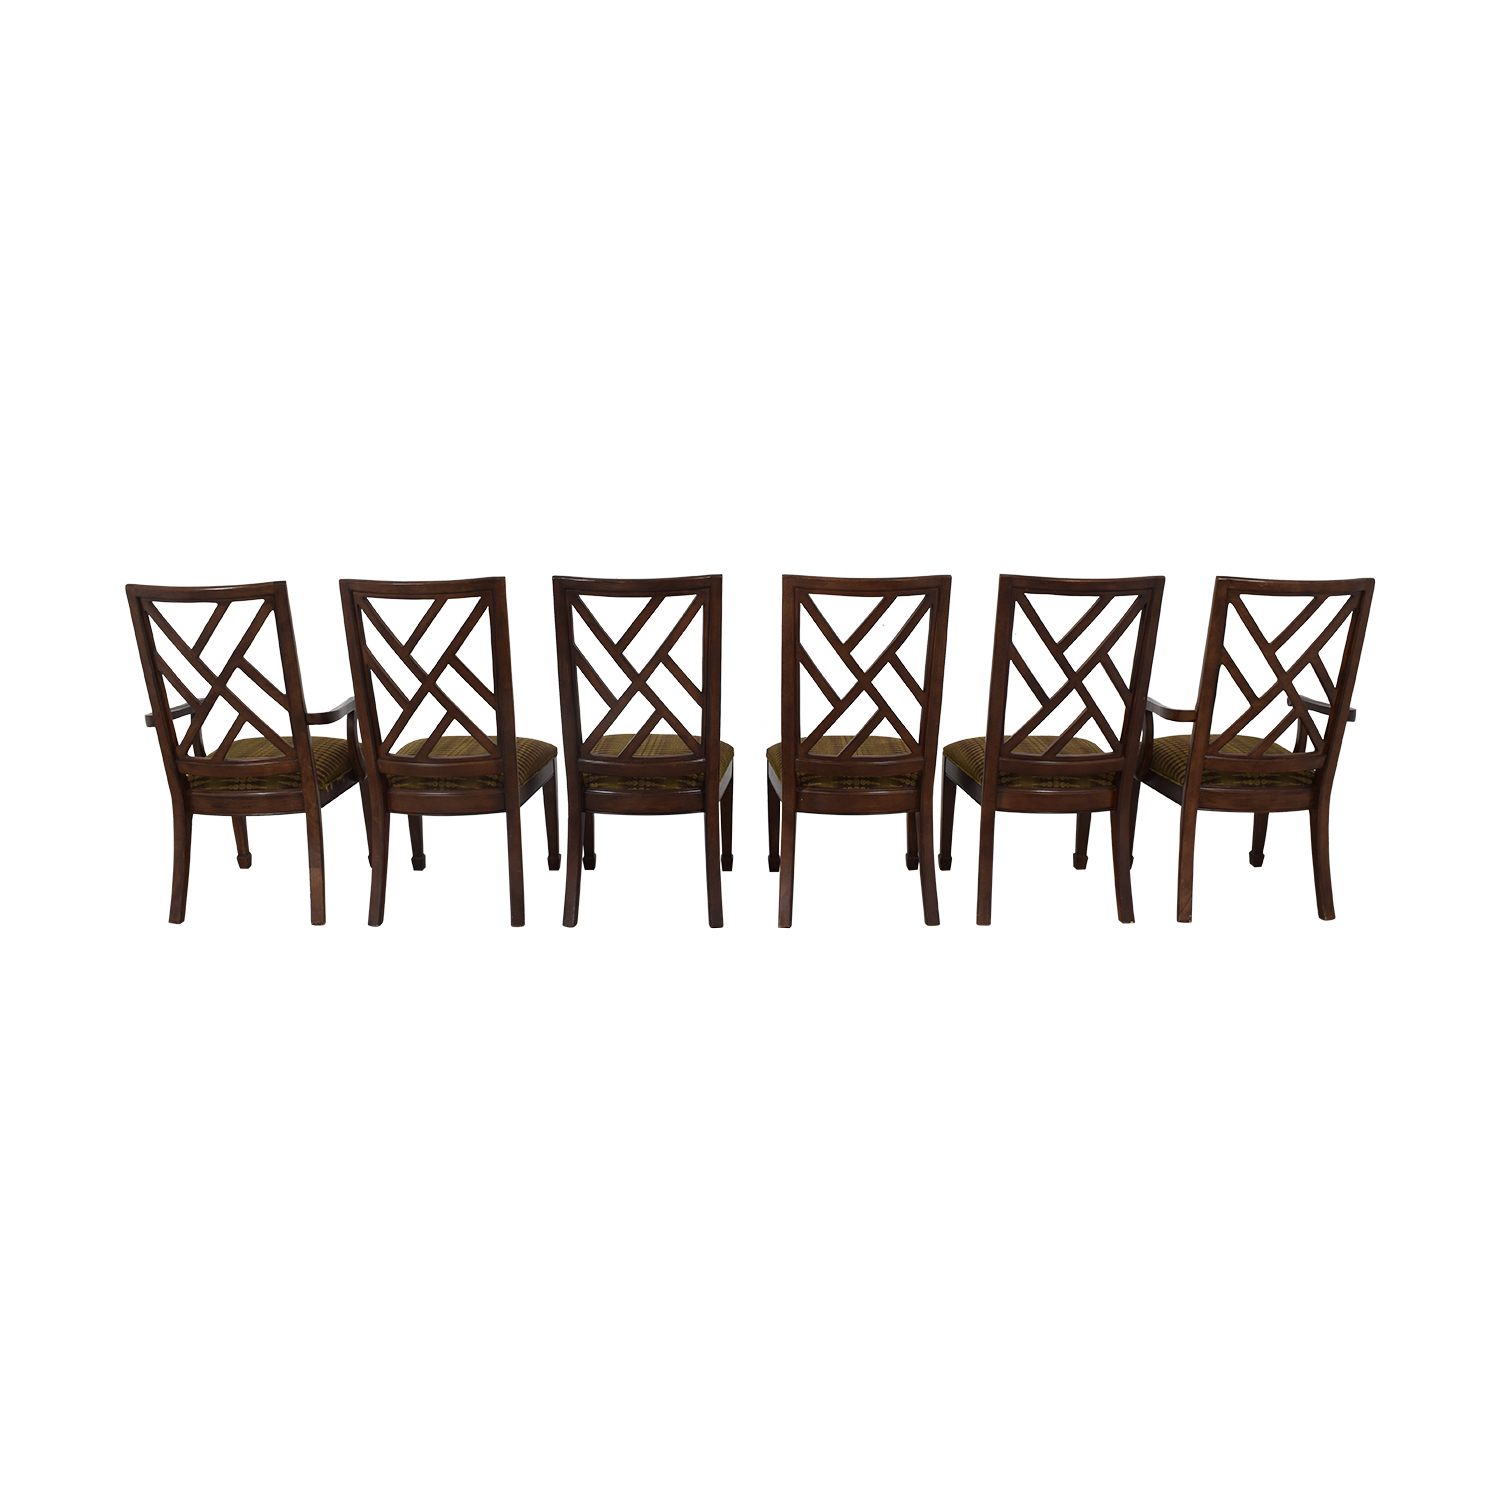 Bernhardt Modern Upholstered Dining Chairs / Dining Chairs